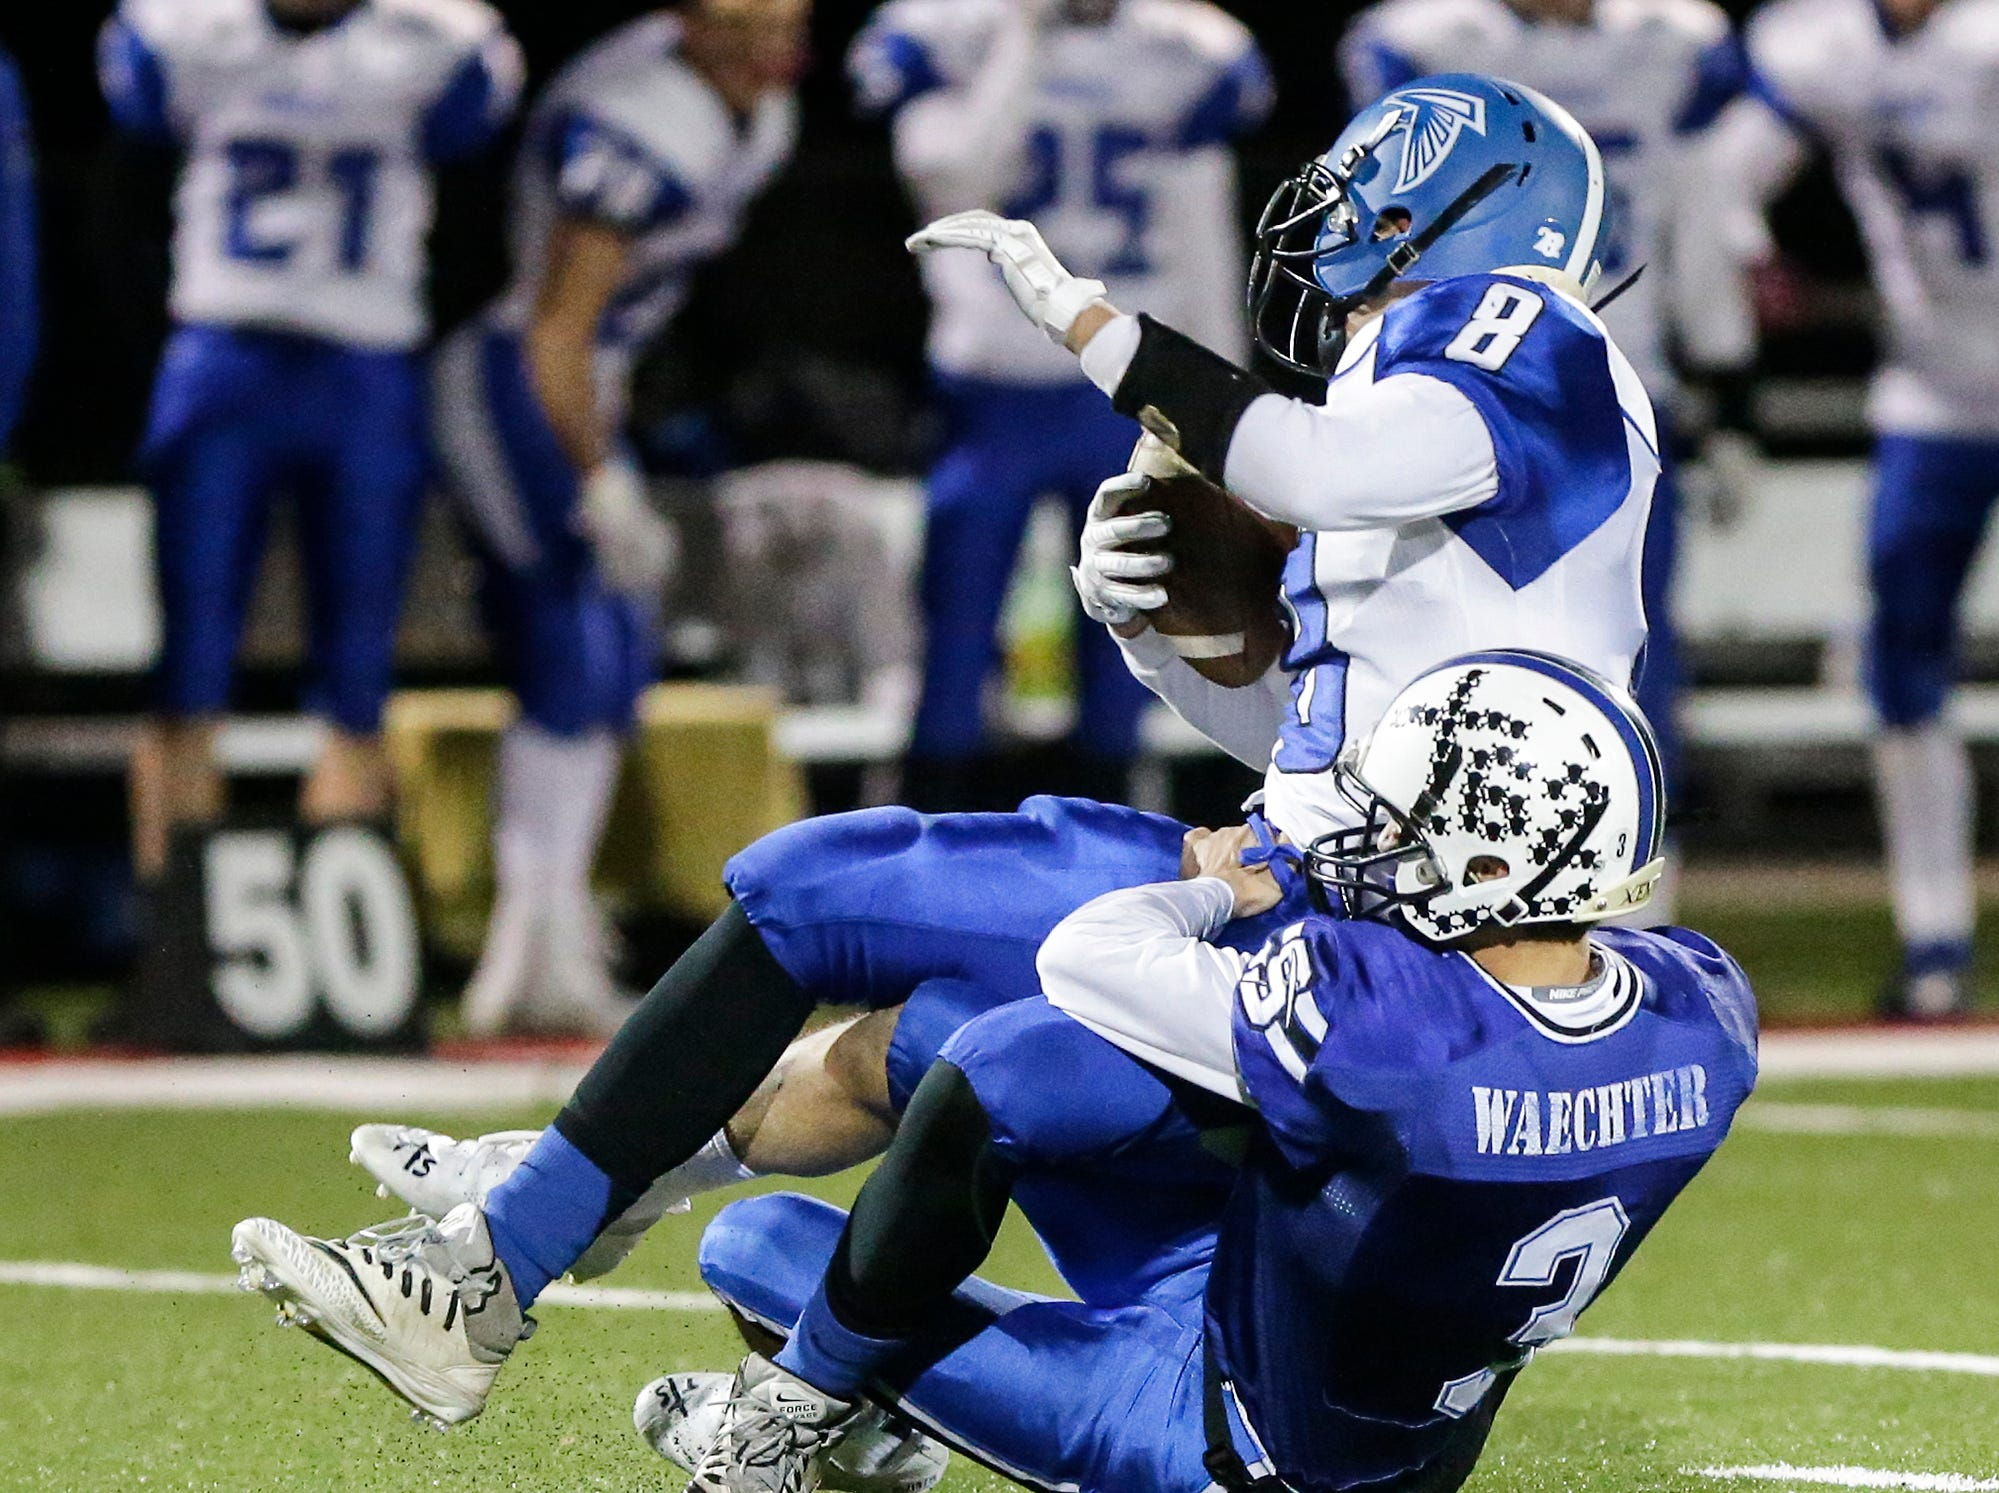 St. Mary's Springs Academy football's Mitchell Waechter tackles Amherst High School's Zach Toelle Friday, November 2, 2018 during their WIAA division 5 level 3 playoff game played in Lomira, Wisconsin. Springs won the game 12-0. Doug Raflik/USA TODAY NETWORK-Wisconsin